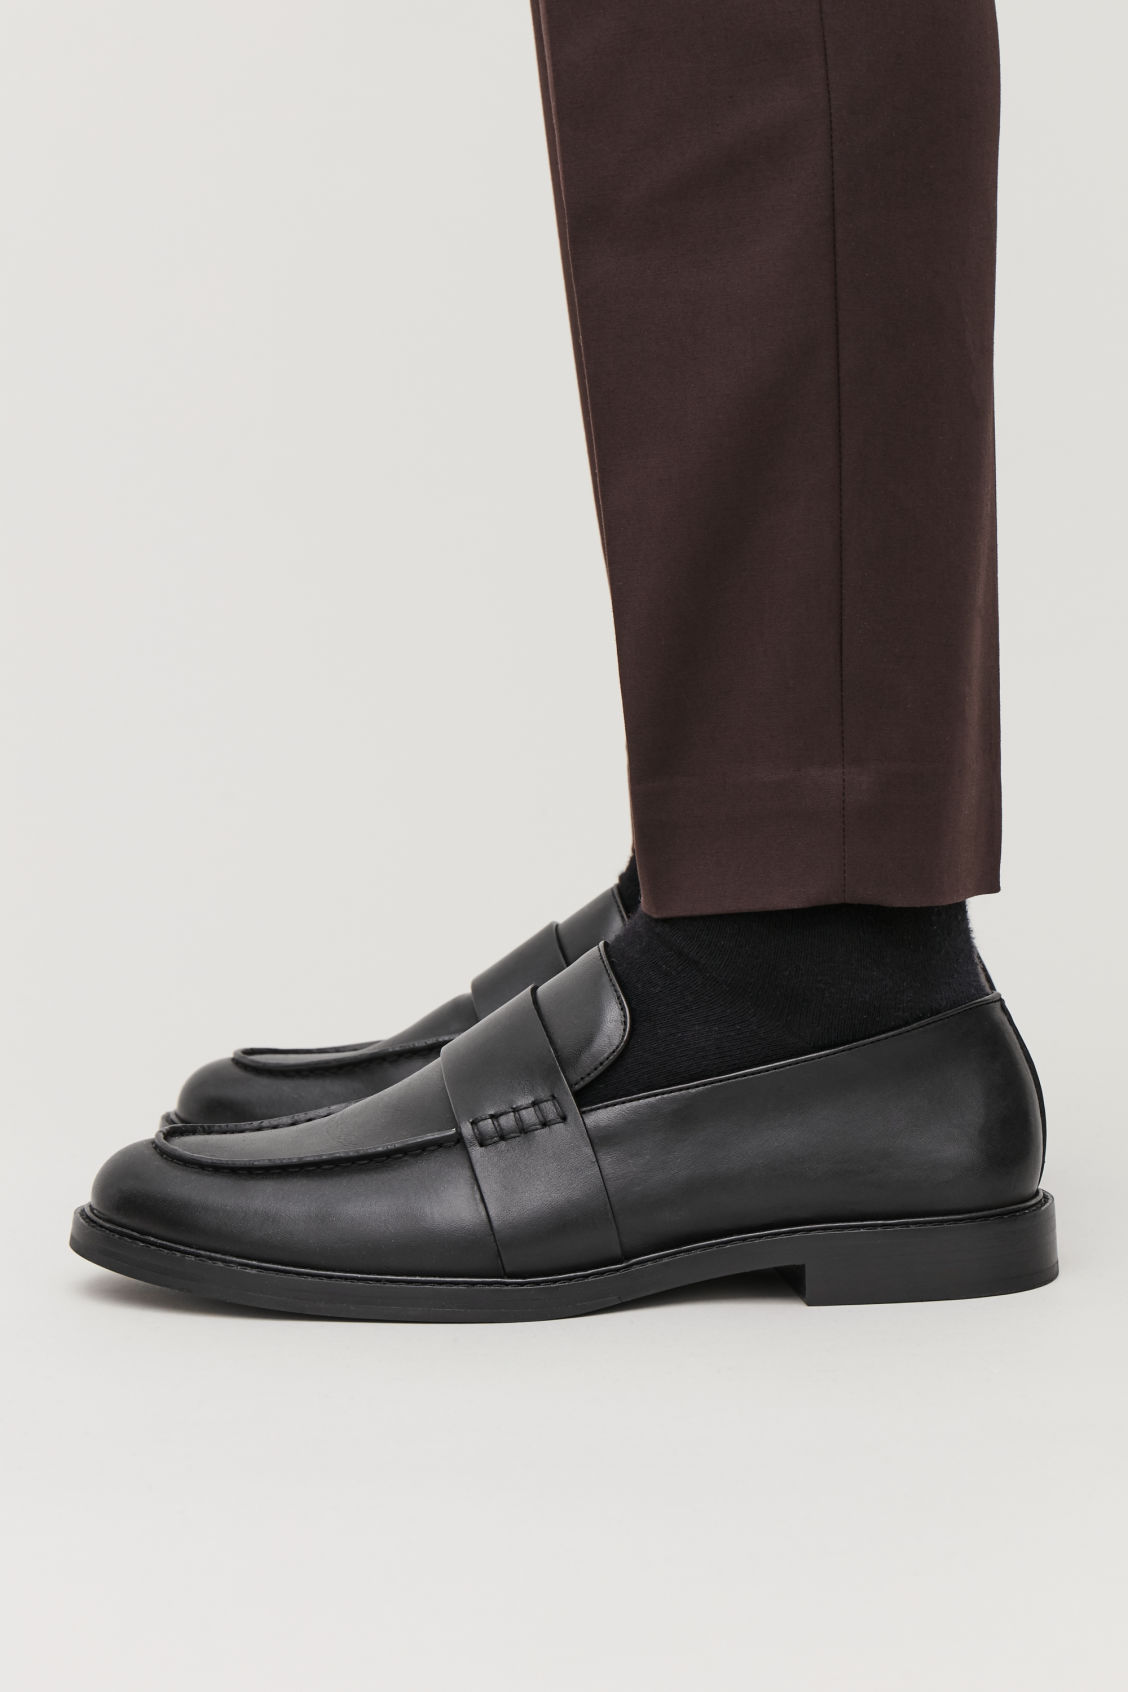 Detailed image of Cos leather penny loafers in black